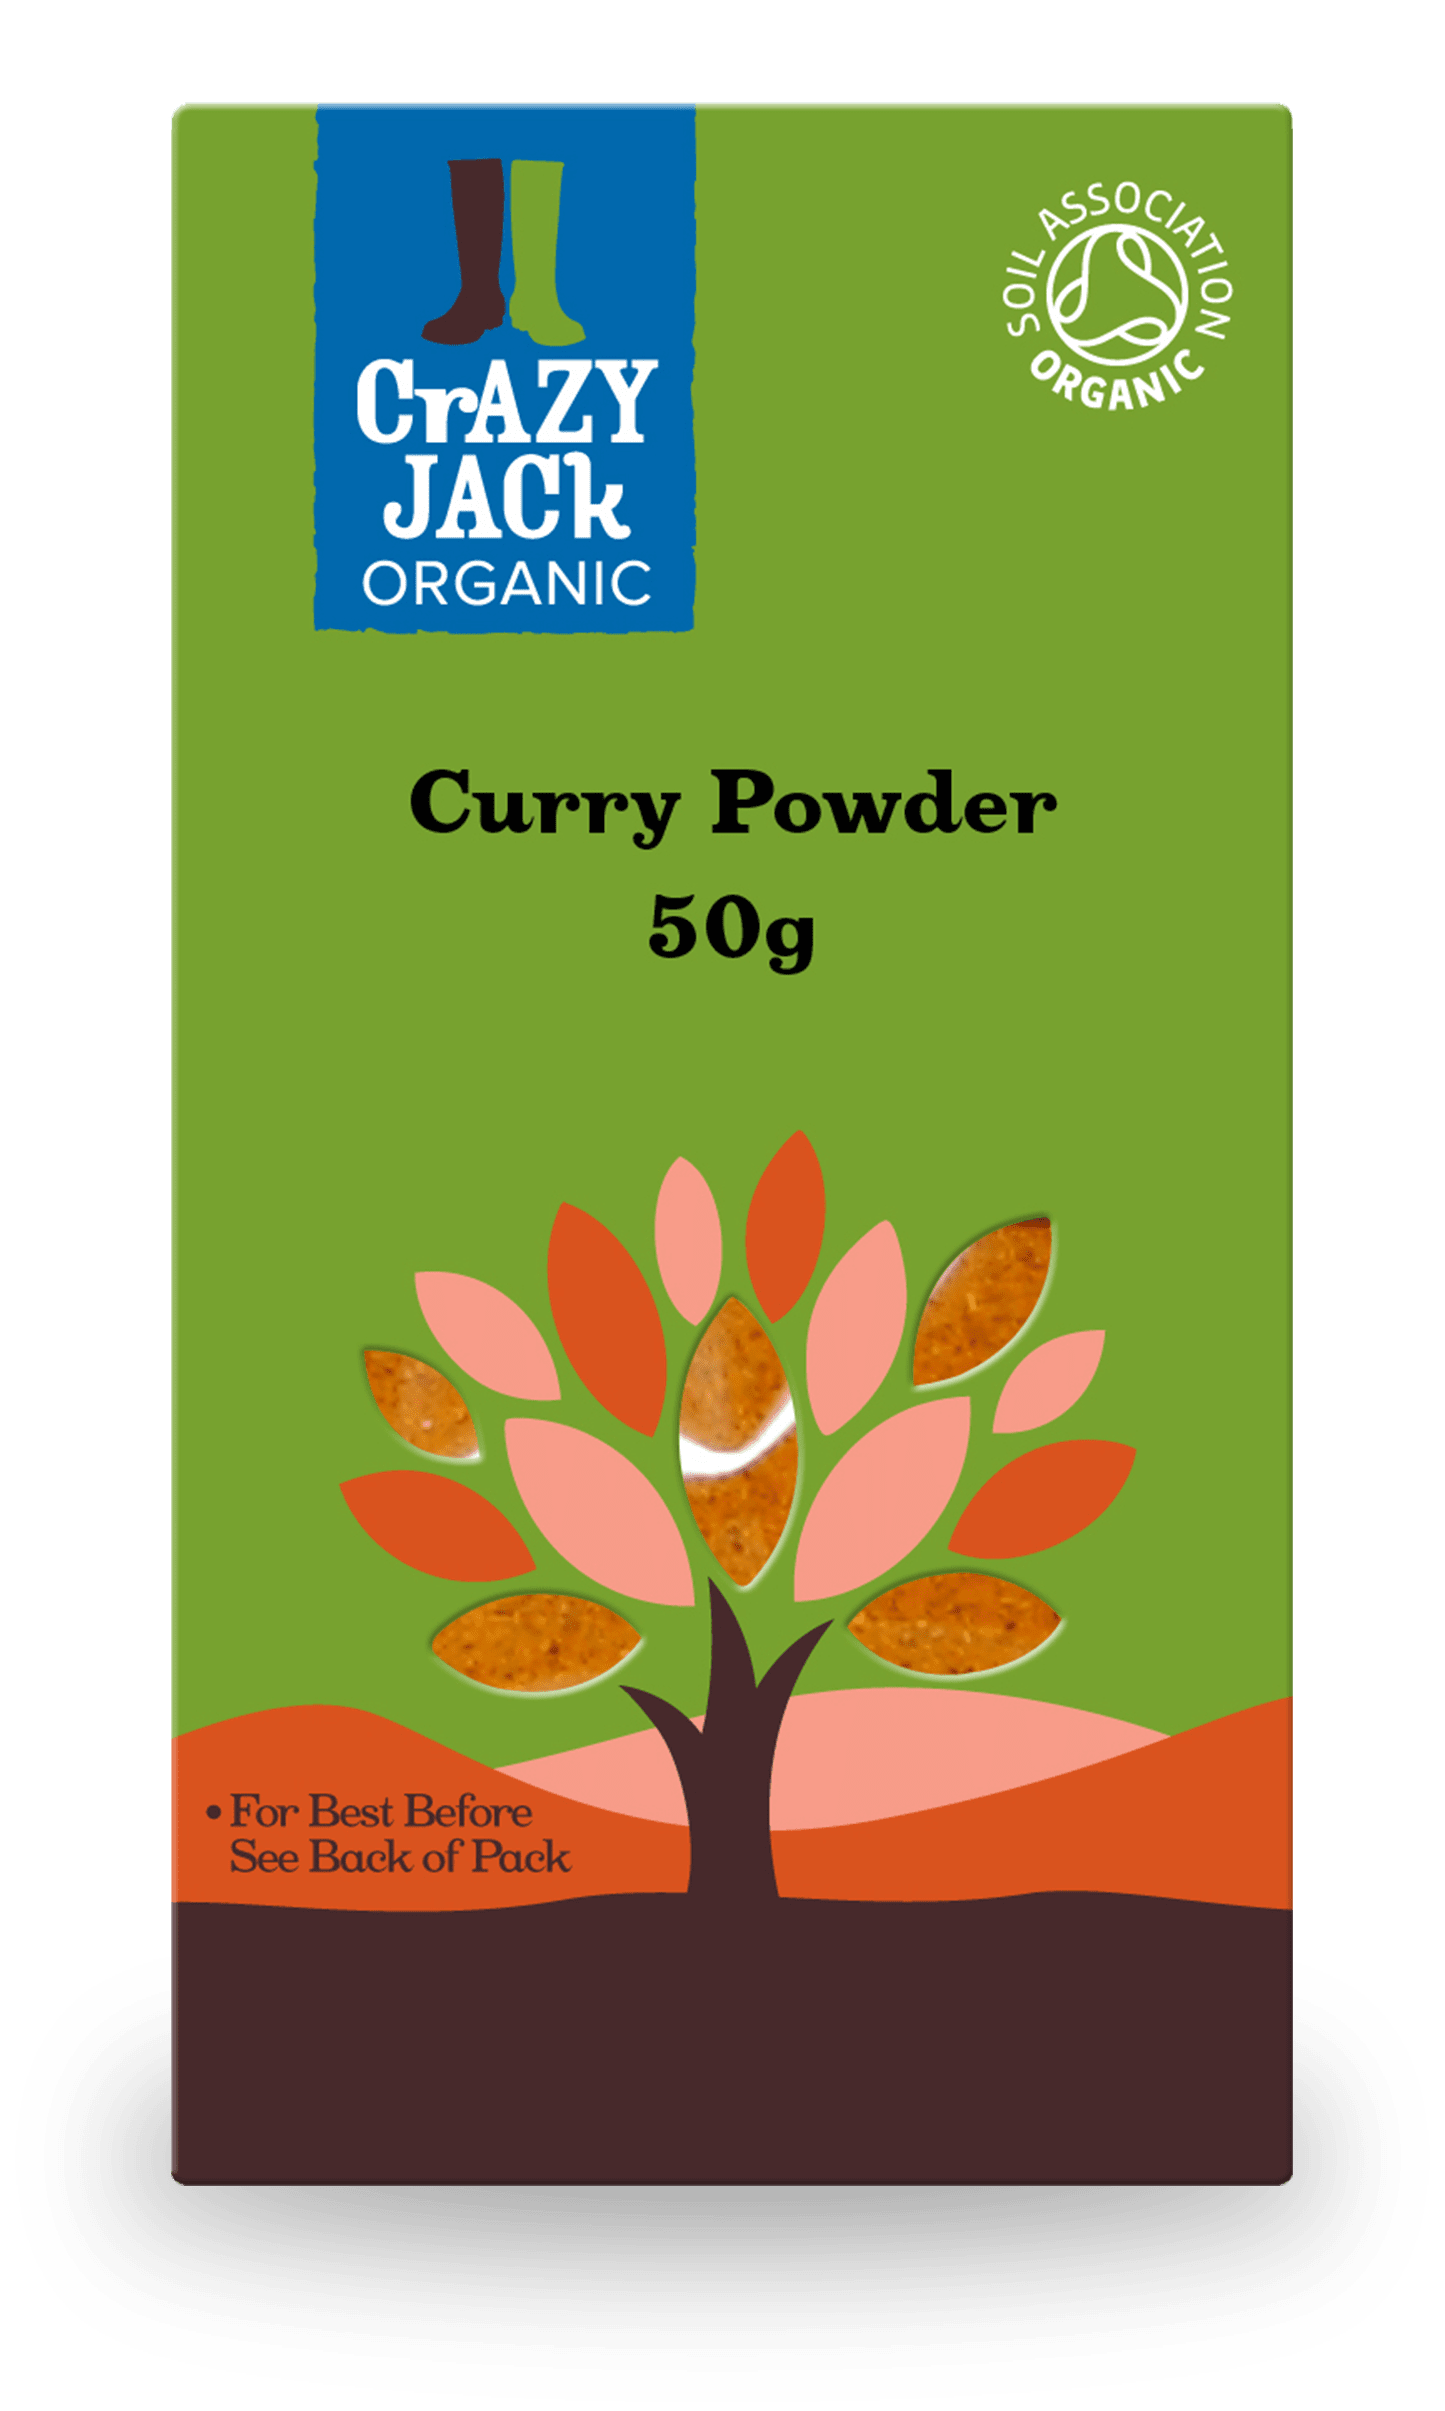 50g packet of organic curry powder